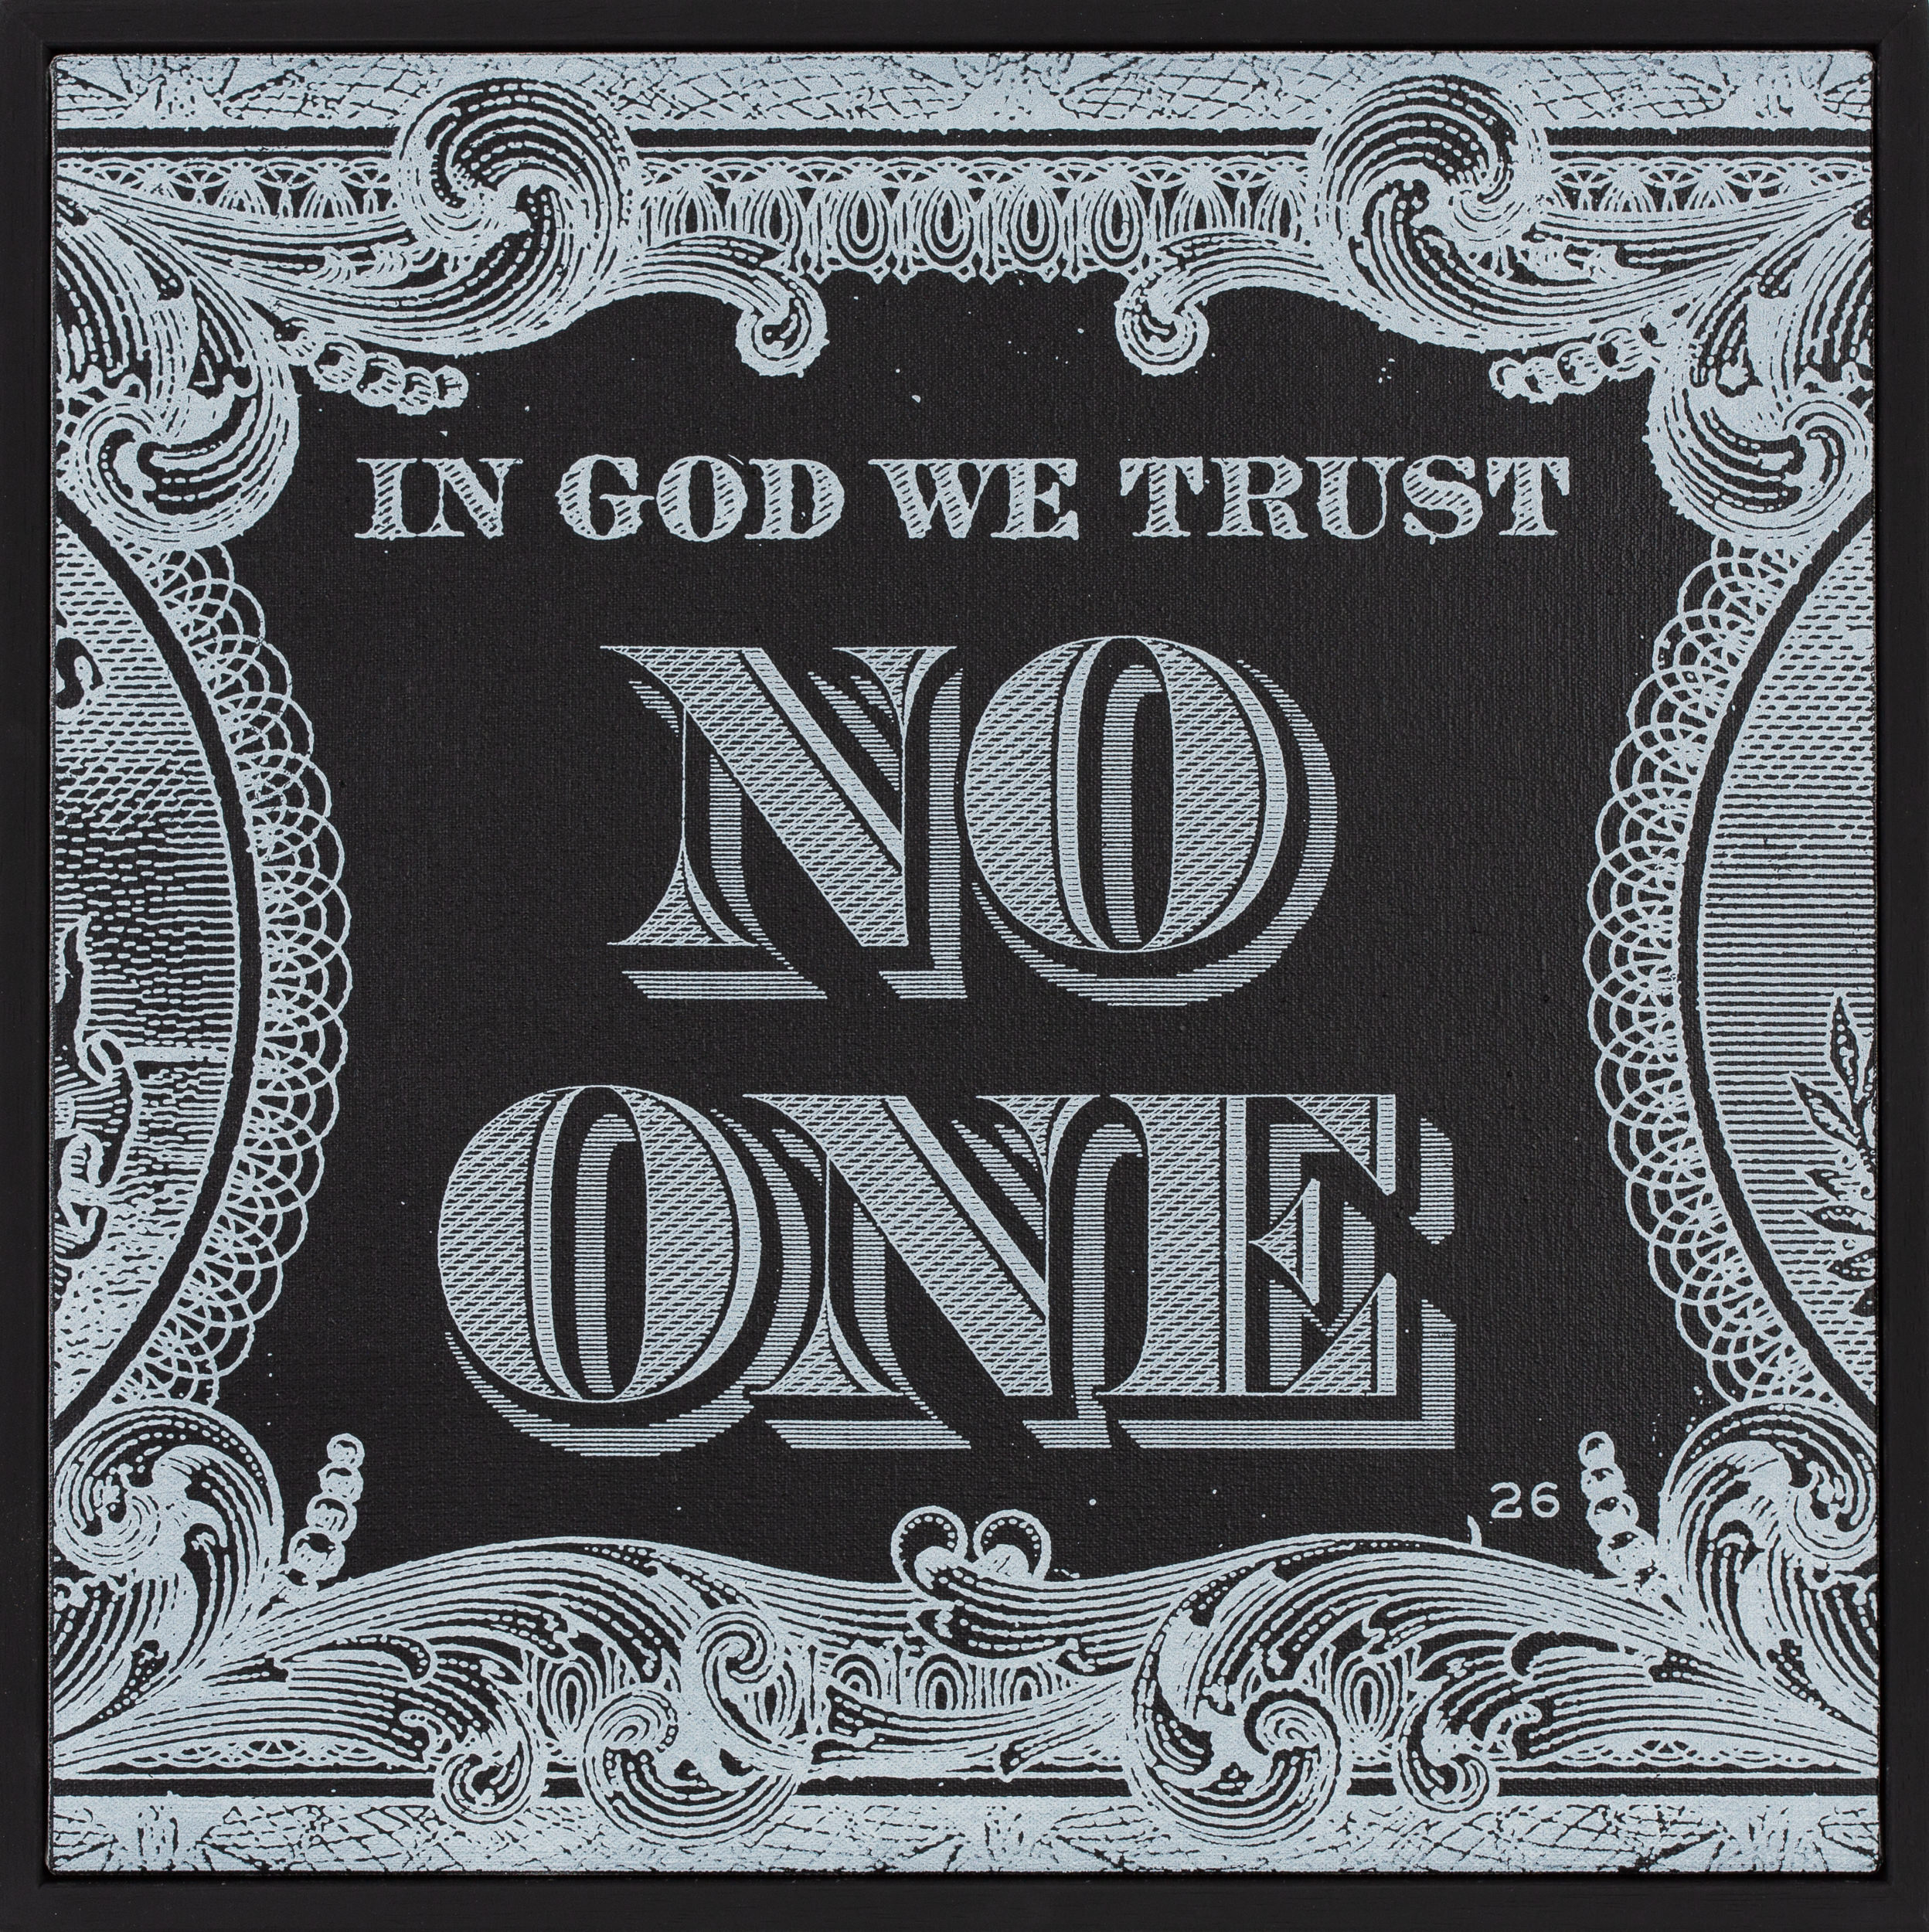 In-God-We-Trust-No-One-White-On-Black_Screen_print_acrylic_on_canvas_on_wood_panel_in_black_wood_frame_40cm_x_40cm-£850.jpg